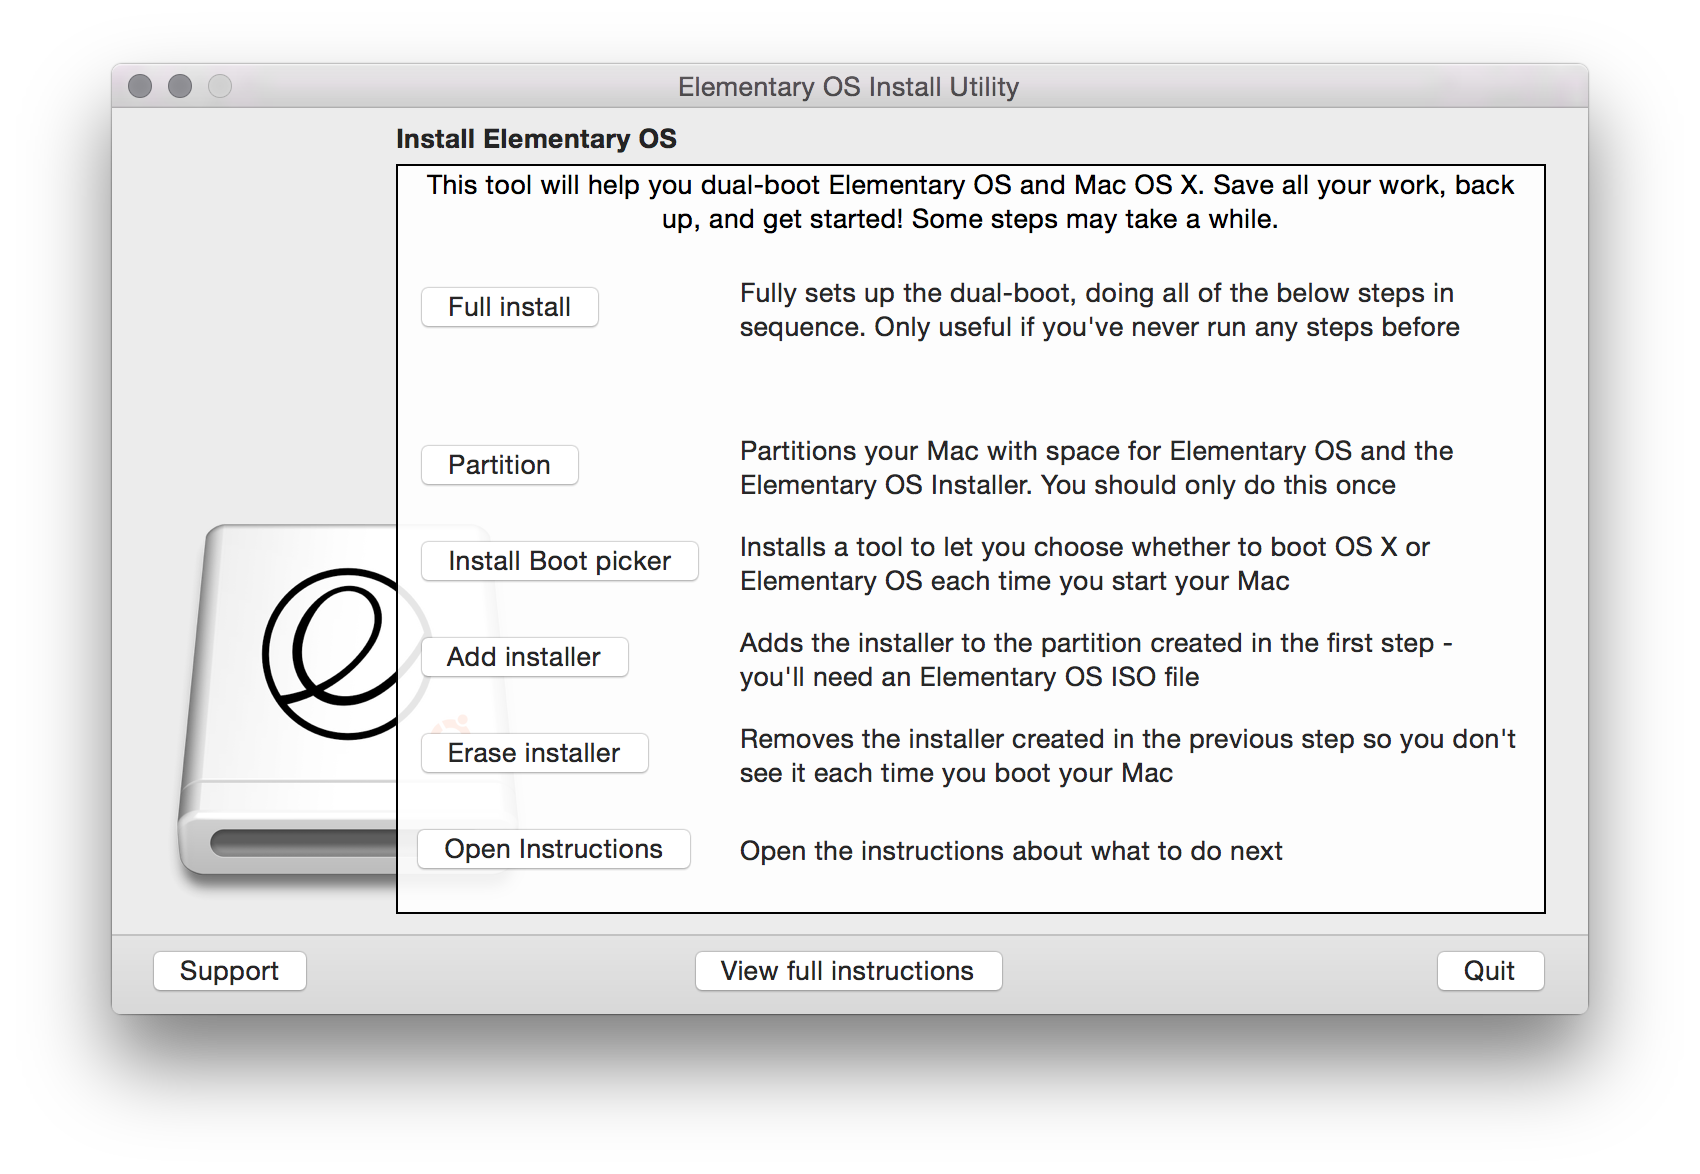 elementary os 4 manual partitions